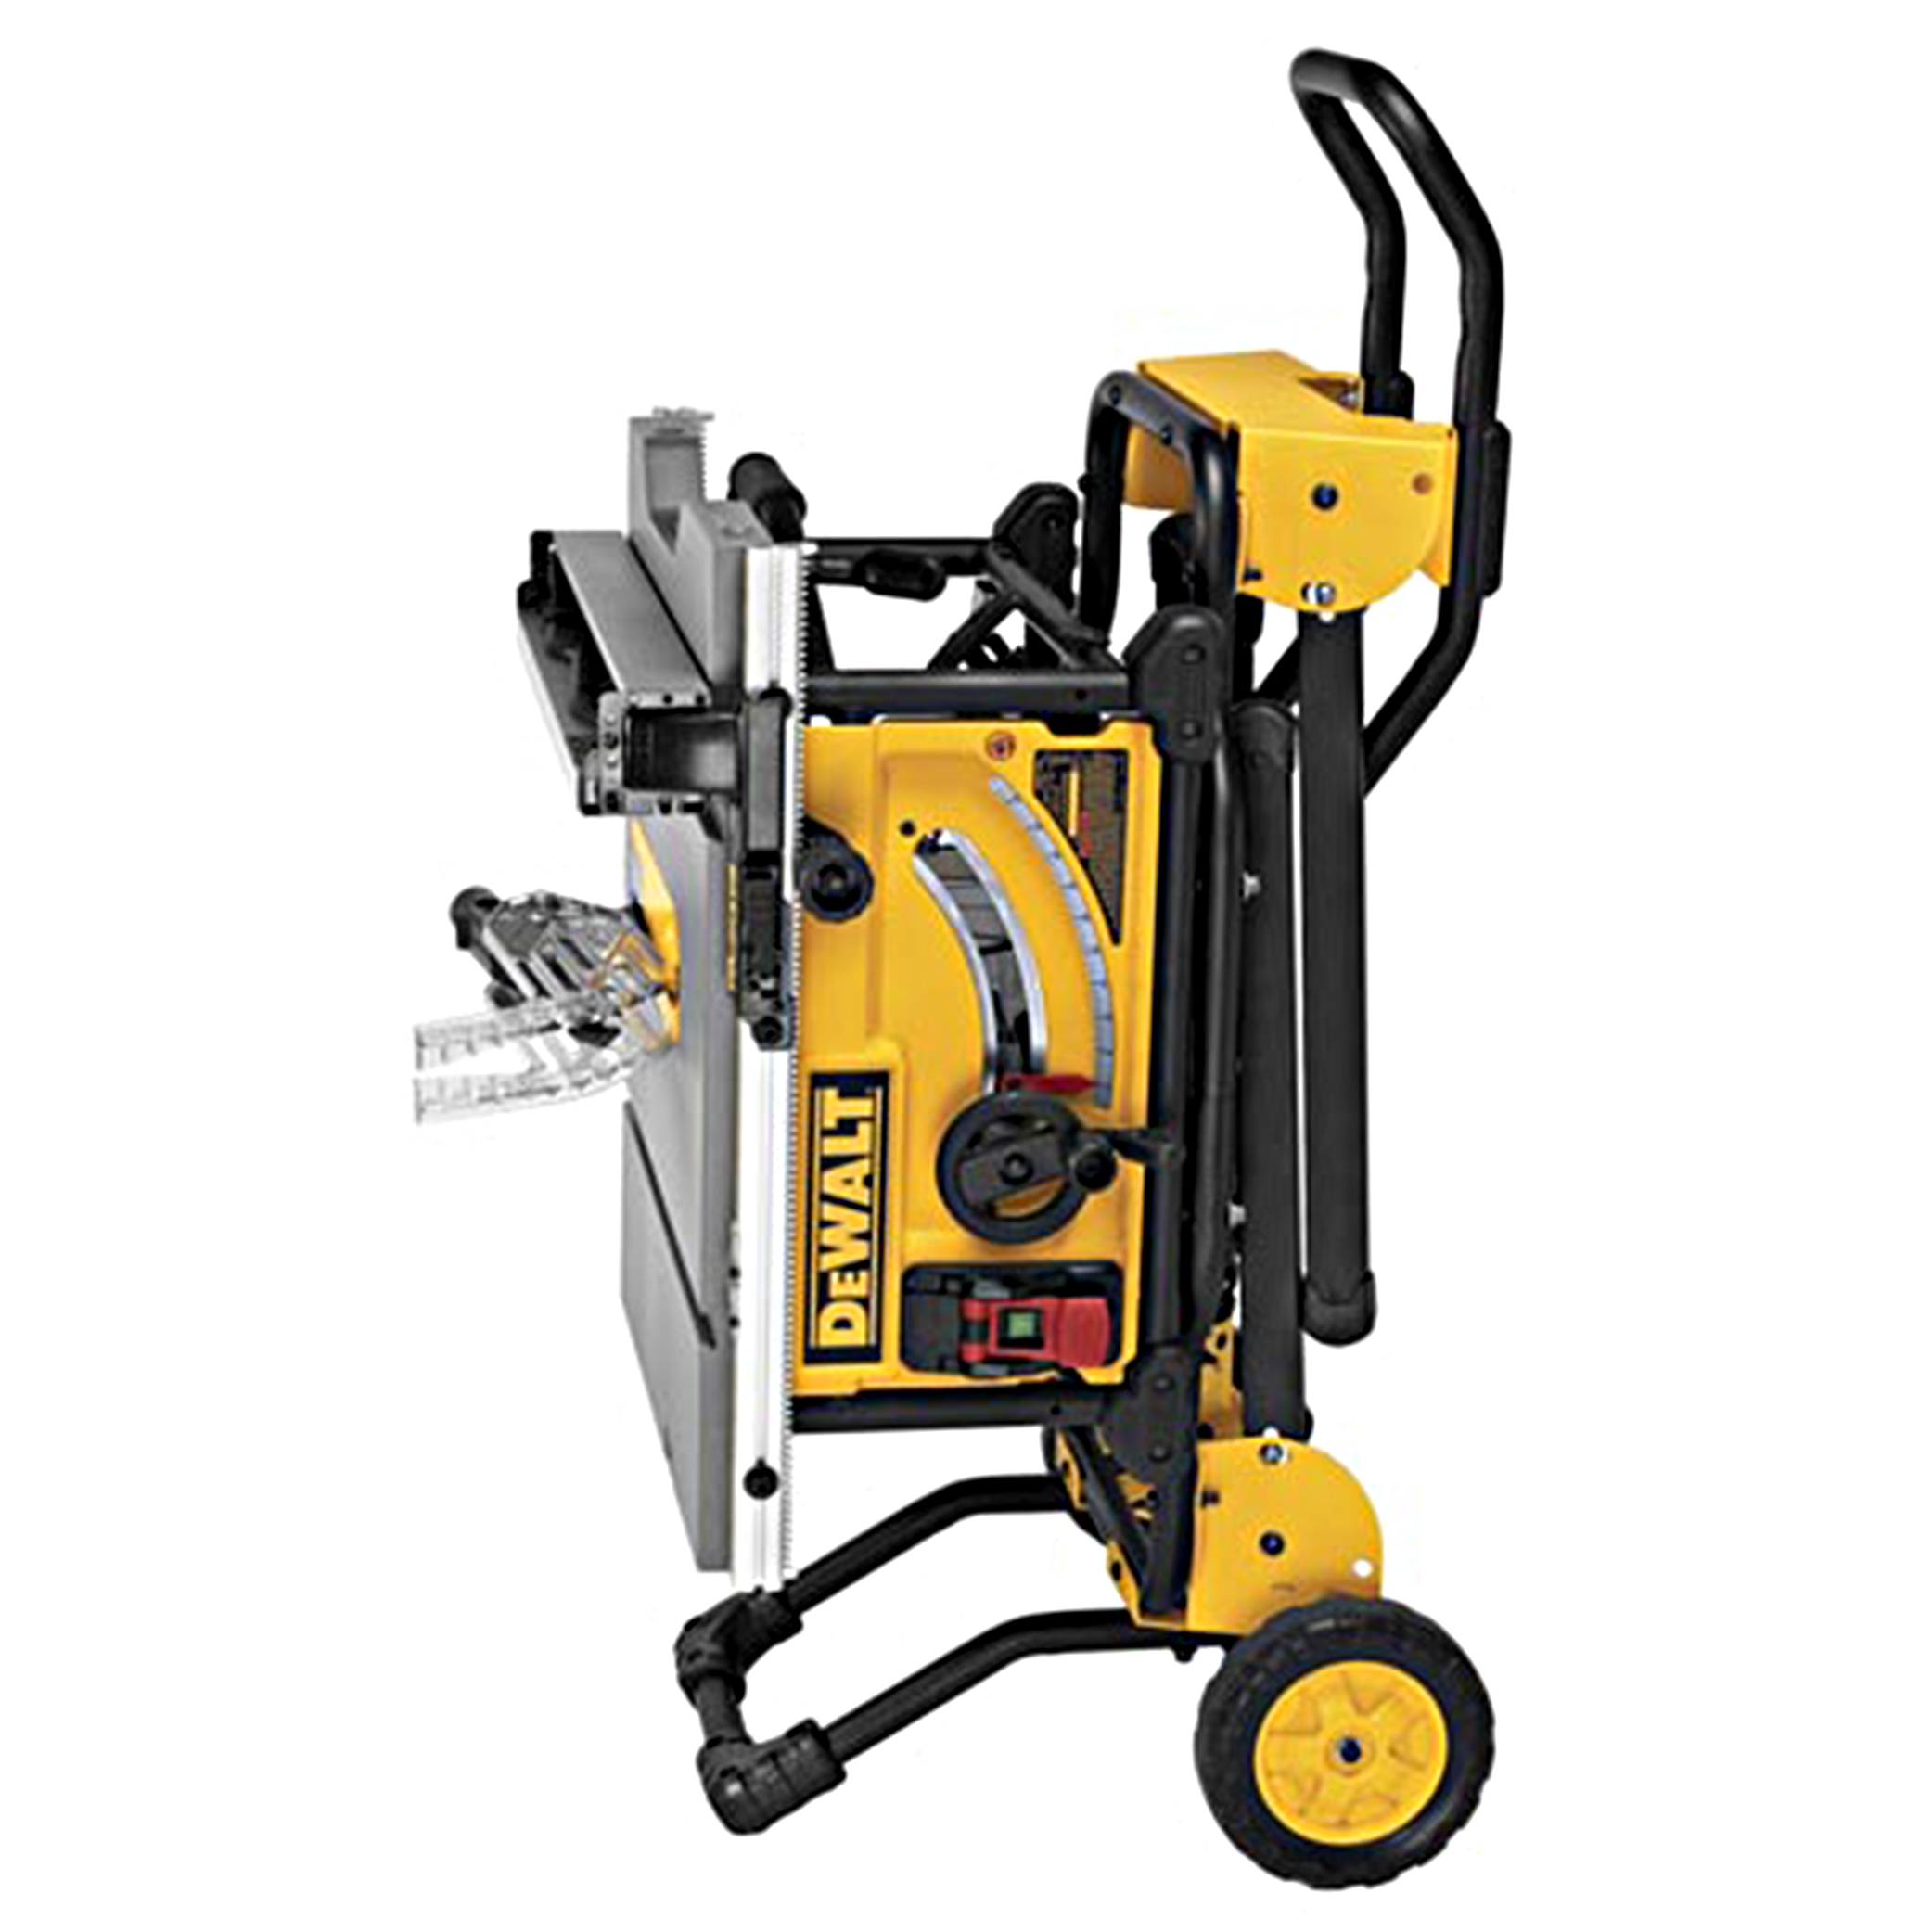 murdoch s dewalt table saw with rolling stand dwe7491rs rh murdochs com dewalt table saw dwe7491rs assembly dewalt table saw dwe7491rs accessories